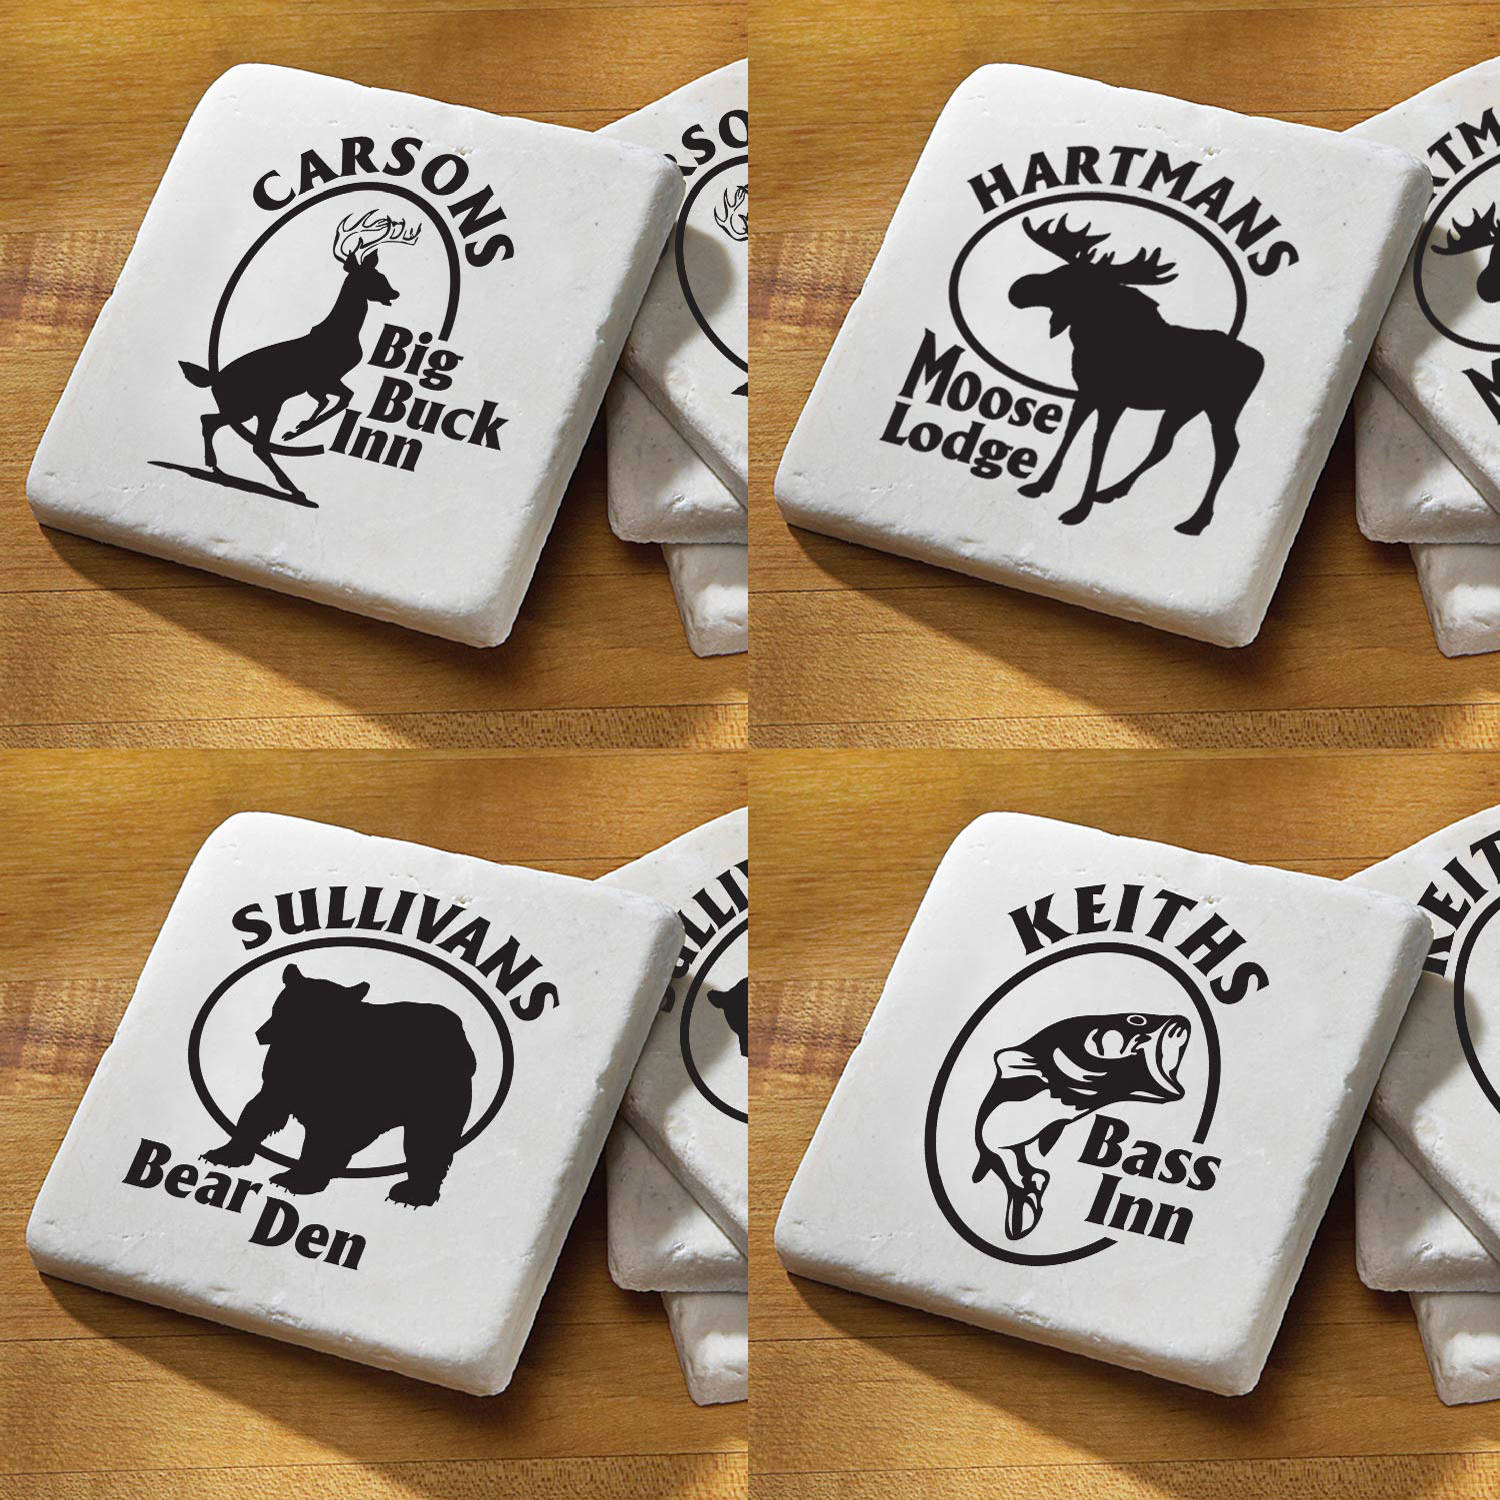 Personalized Outdoorsman Design Coaster Set, Available in 4 Designs